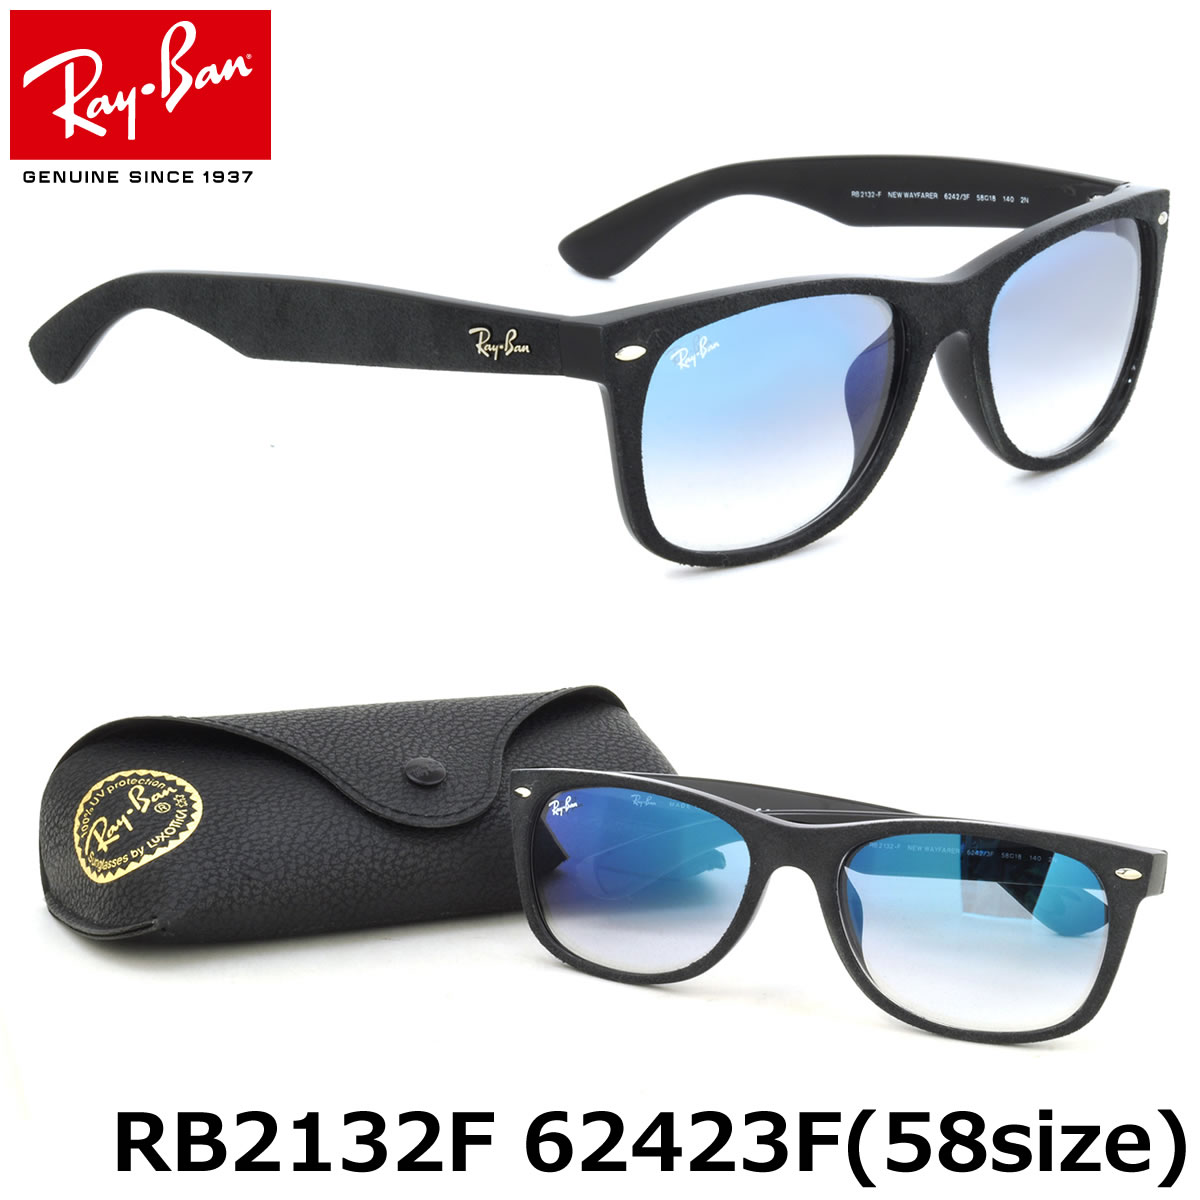 new ray ban lenses babc  RB2132F NEW WAYFARER Pronoun Ryy-byn of a Wayfarer is to stylish  contemporary and is now available Than the original Wayfarer has become  somewhat a thinner